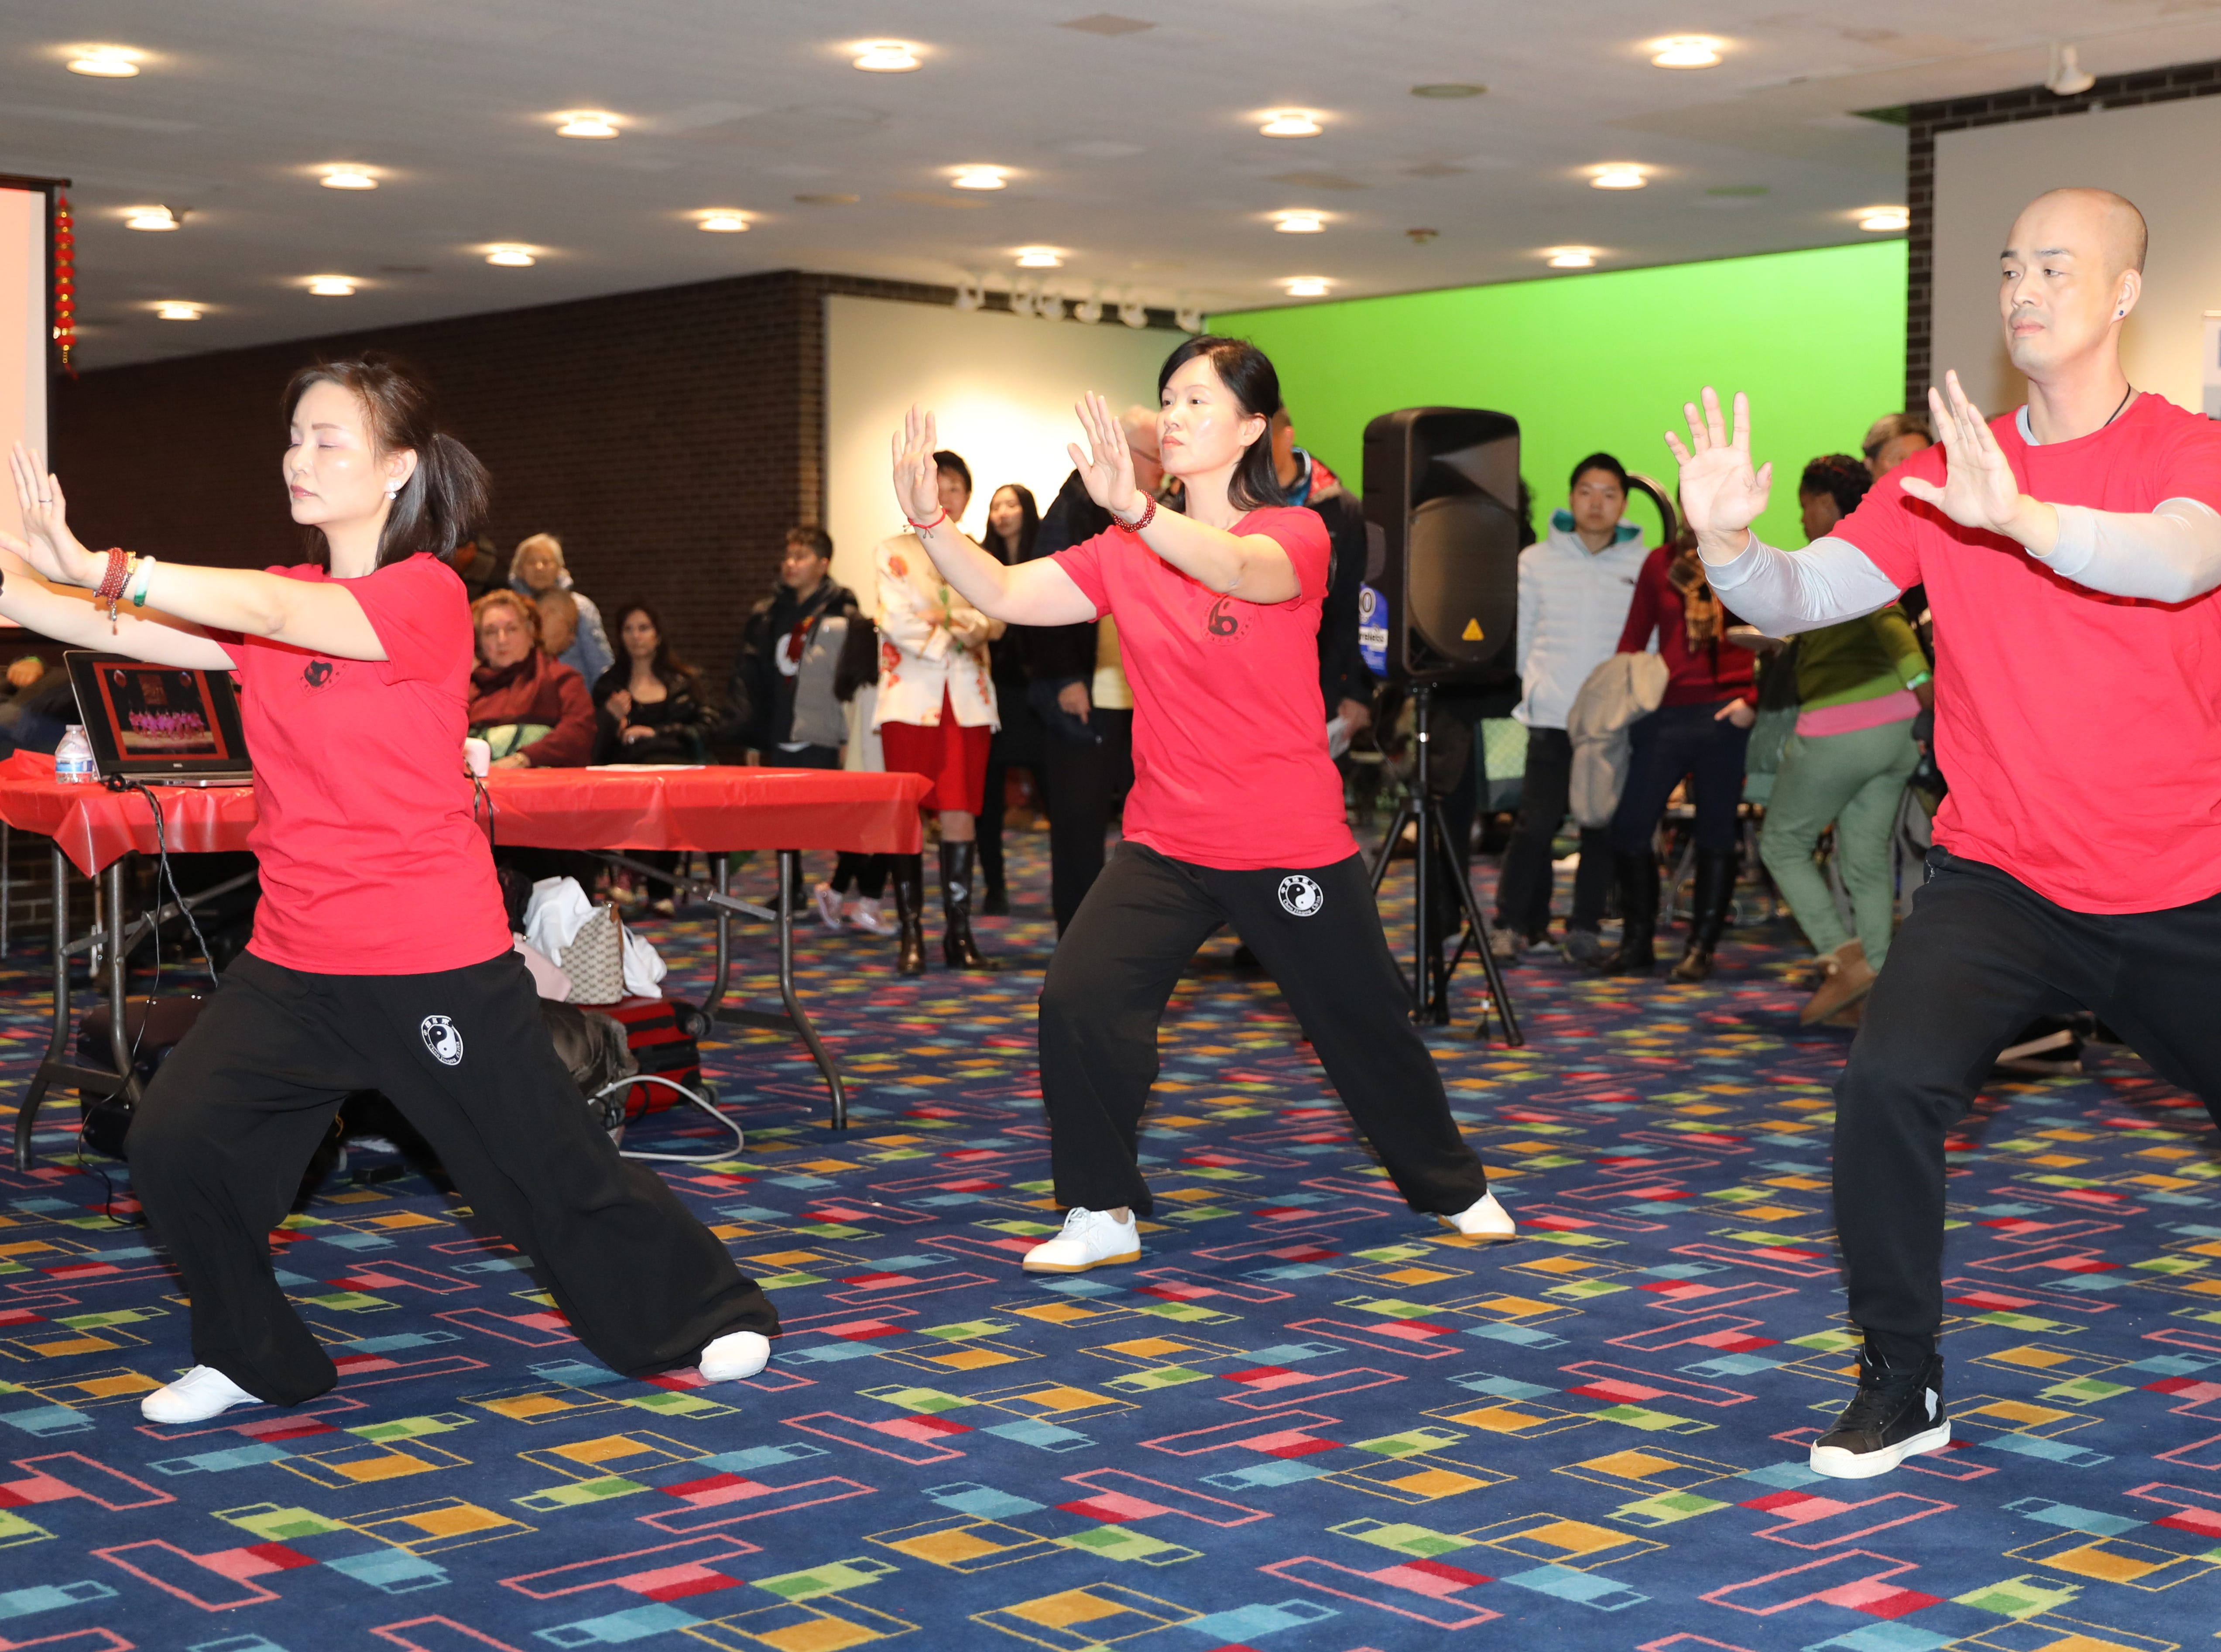 Members of the USA Chen Tai Chi Academy perform, during the 30th Chinese New Year Festival, the Year of the Pig, sponsored by WACA (Westchester Association of Chinese Americans), at The Performing Arts Center at Purchase College SUNY, Feb. 9, 2019.